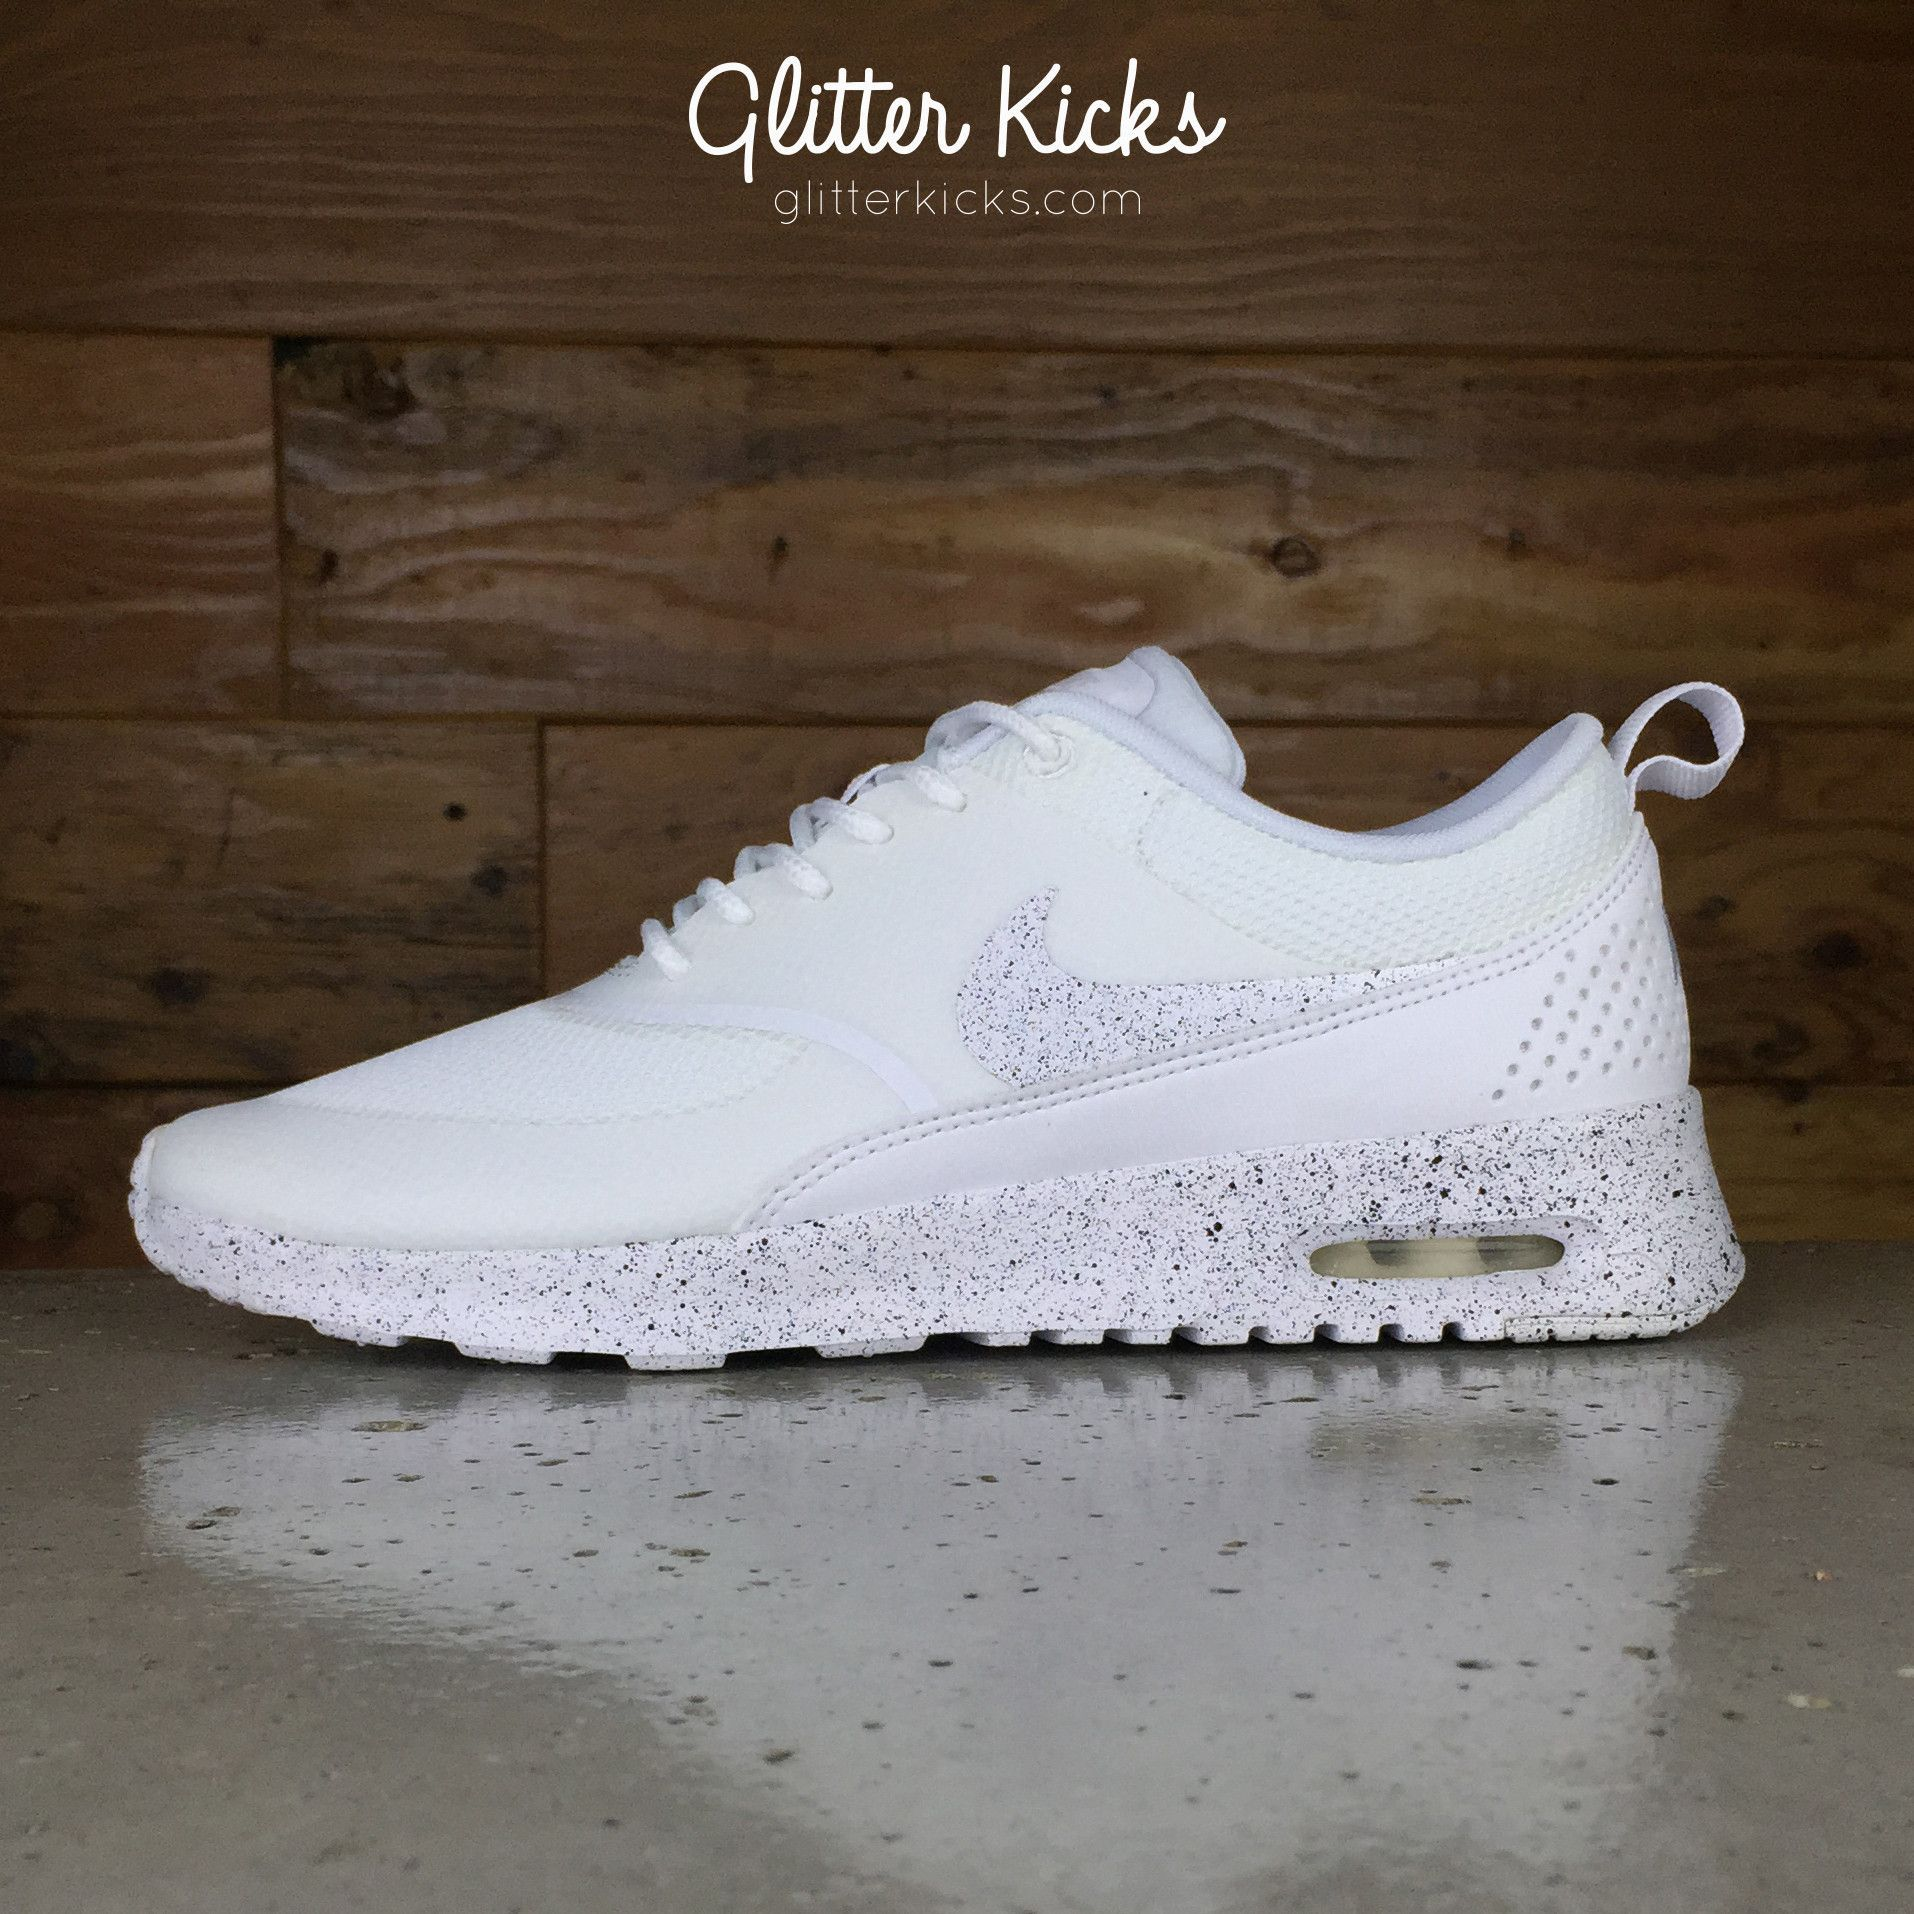 Nike Air Max Thea Running Shoes By Glitter Kicks - White White Black Paint  Speckle 534bf4446c